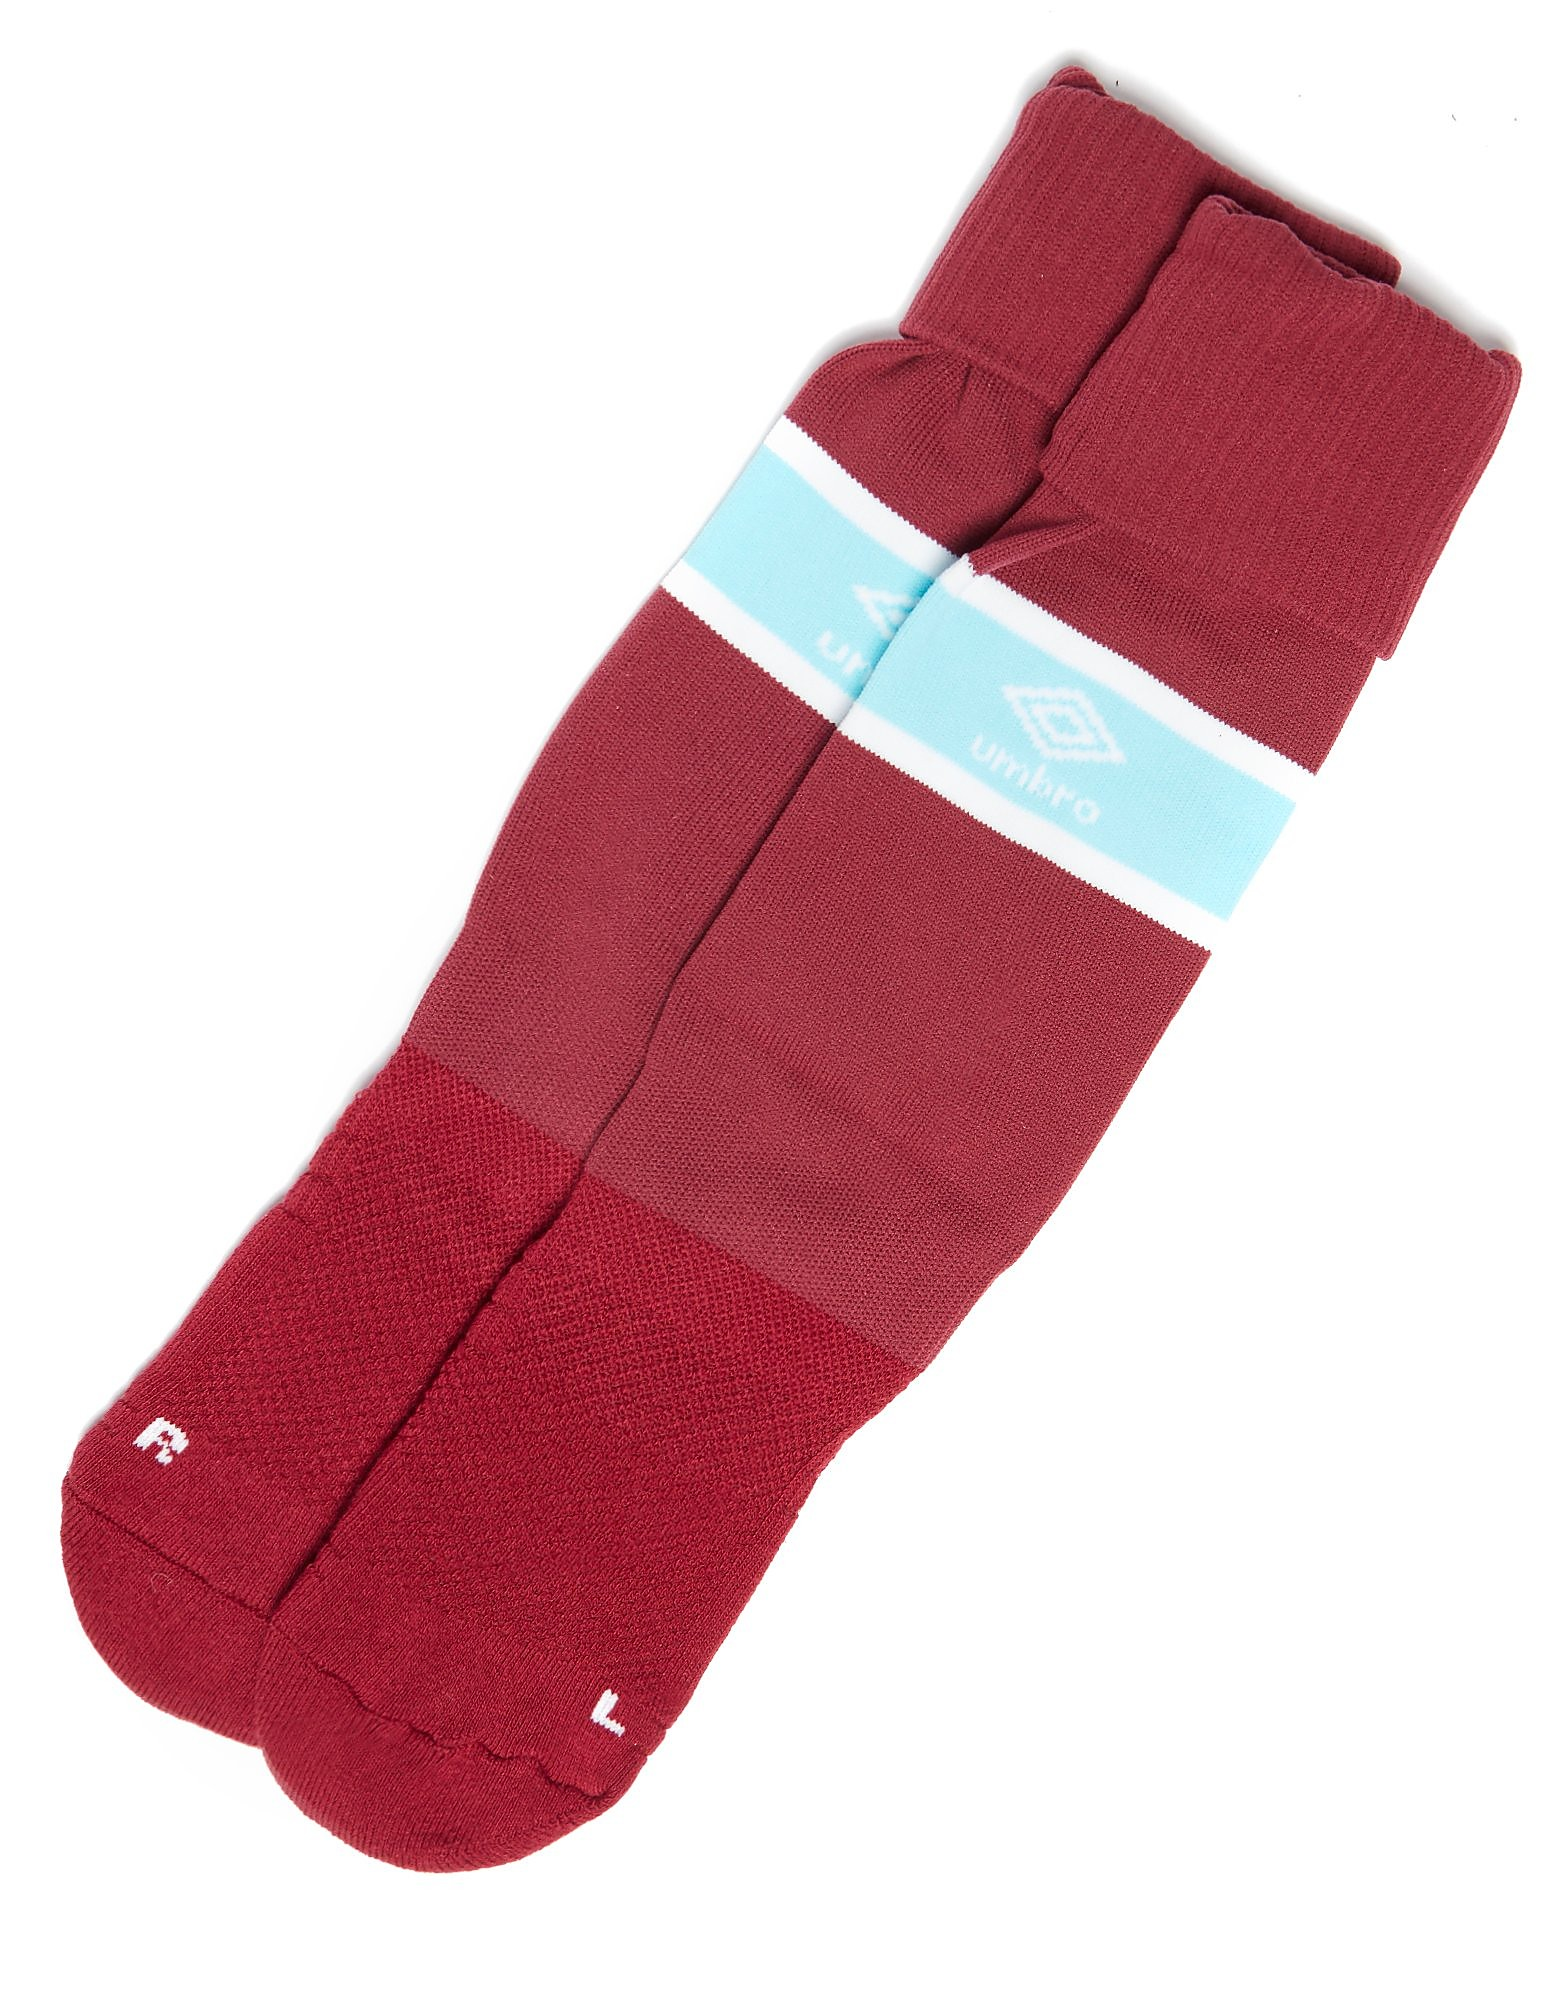 Umbro West Ham United 2016/17 Home Socks